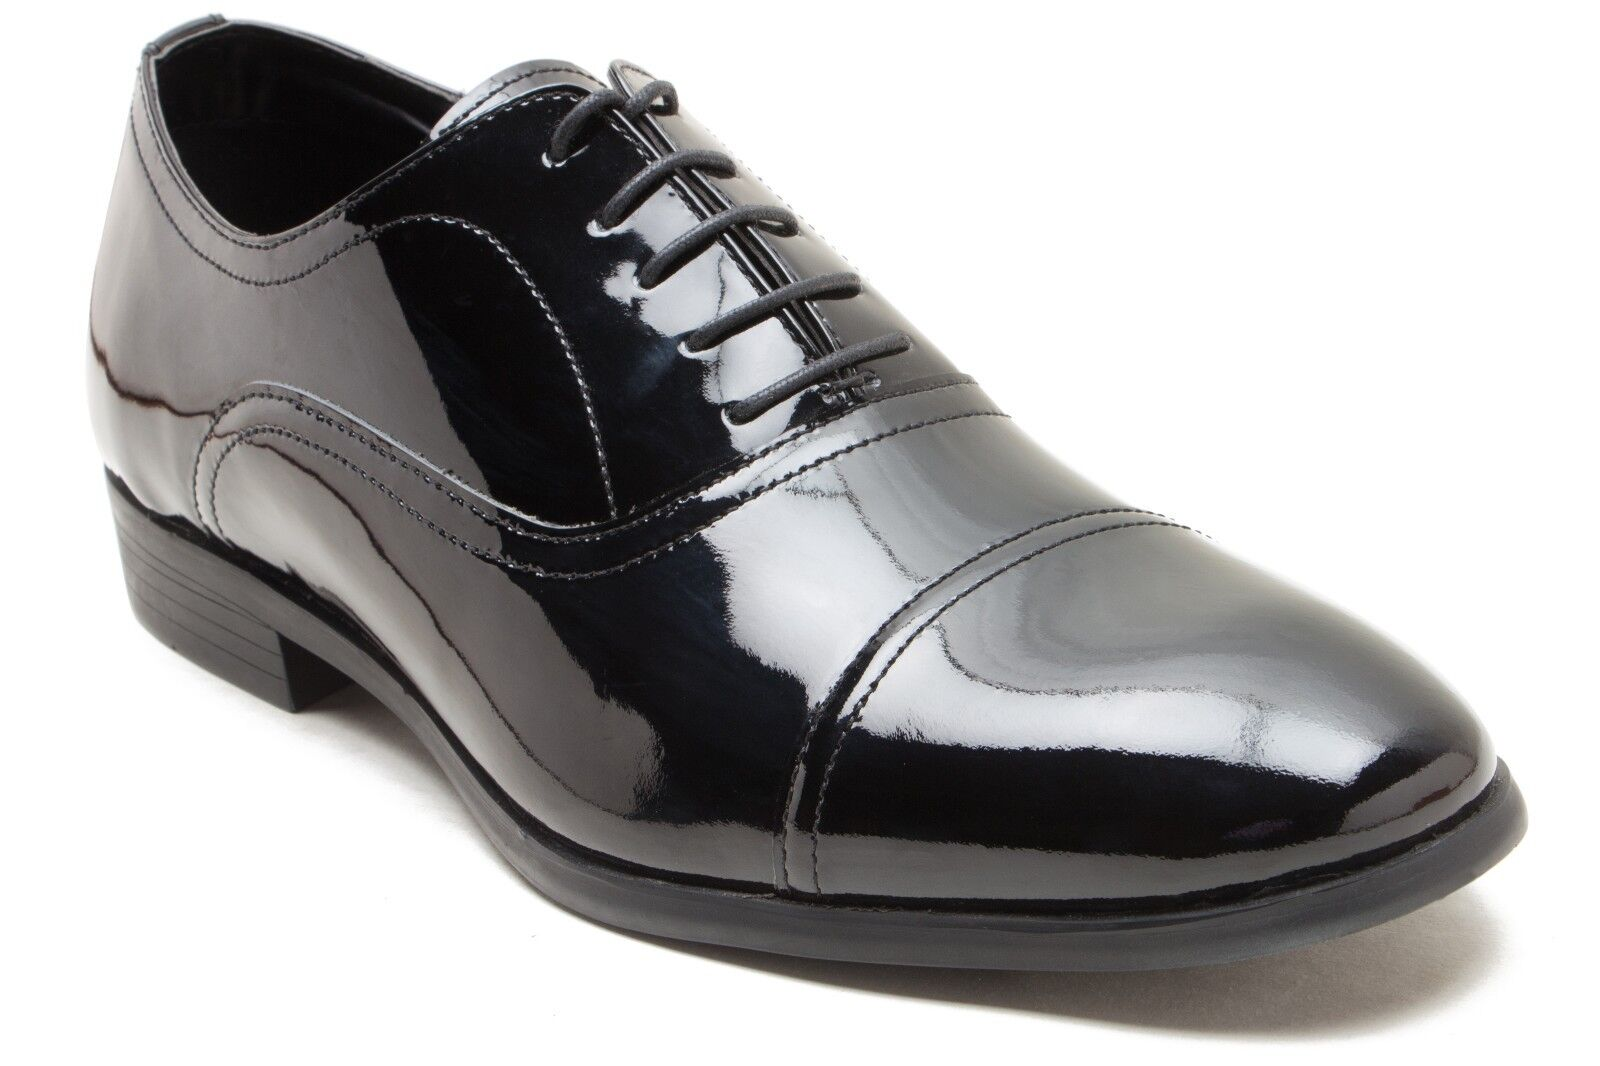 Red Tape Men's Boston Black Patent Leather Straight Cap Oxford shoes